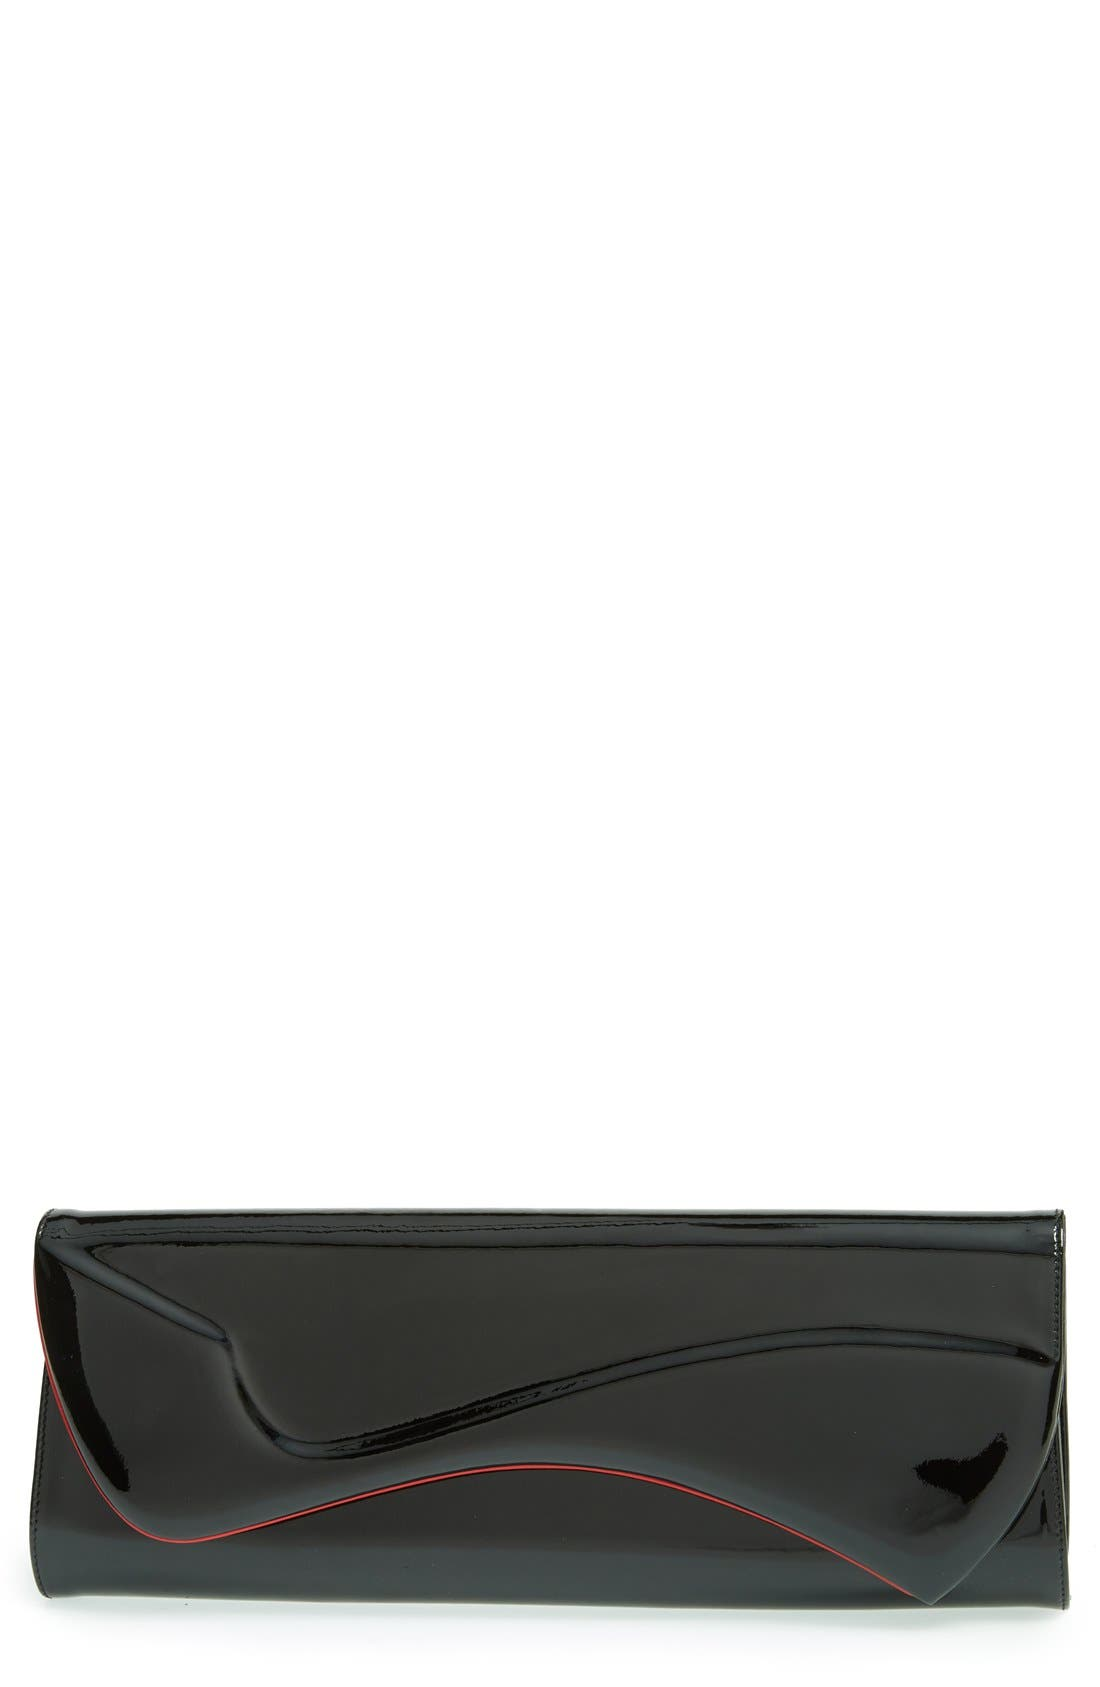 Main Image - Christian Louboutin 'Pigalle' Patent Leather Clutch